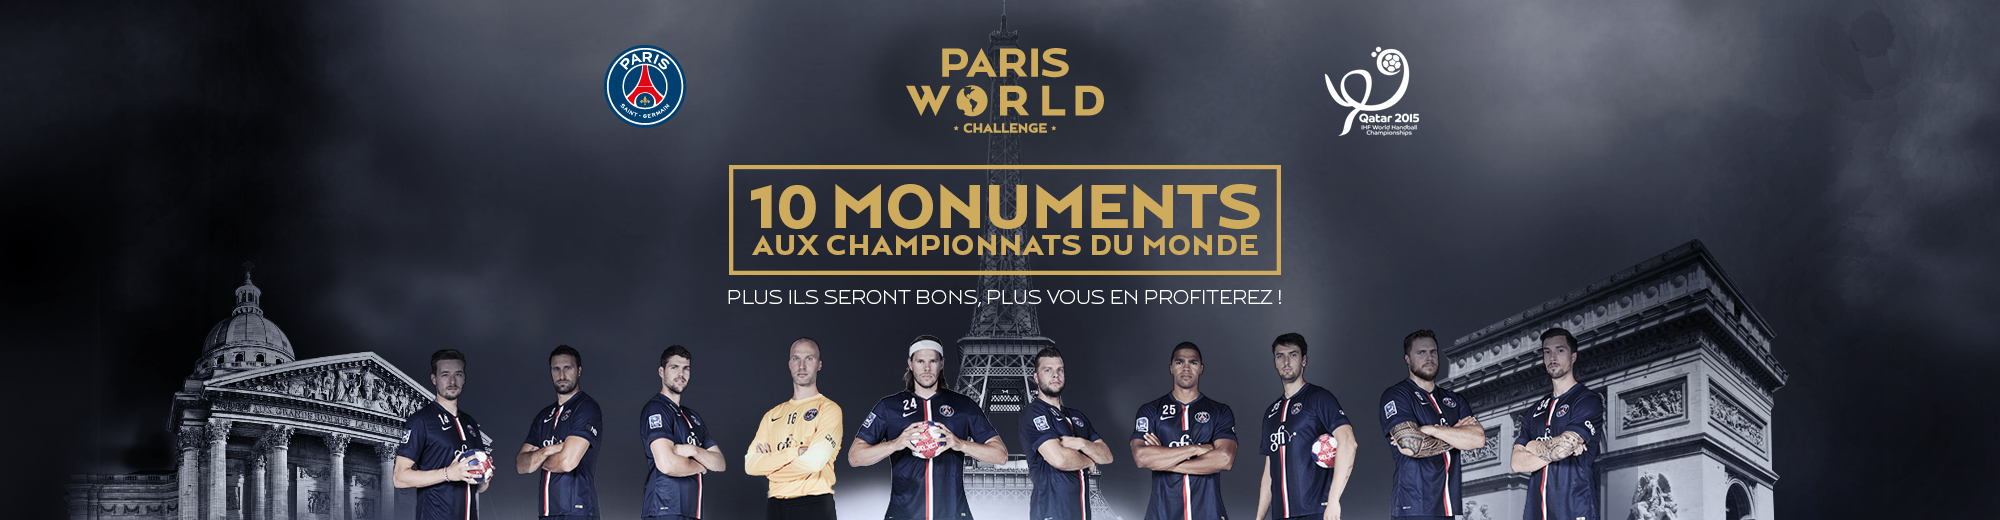 10 joueurs paris wold challenge - Go with the Blog